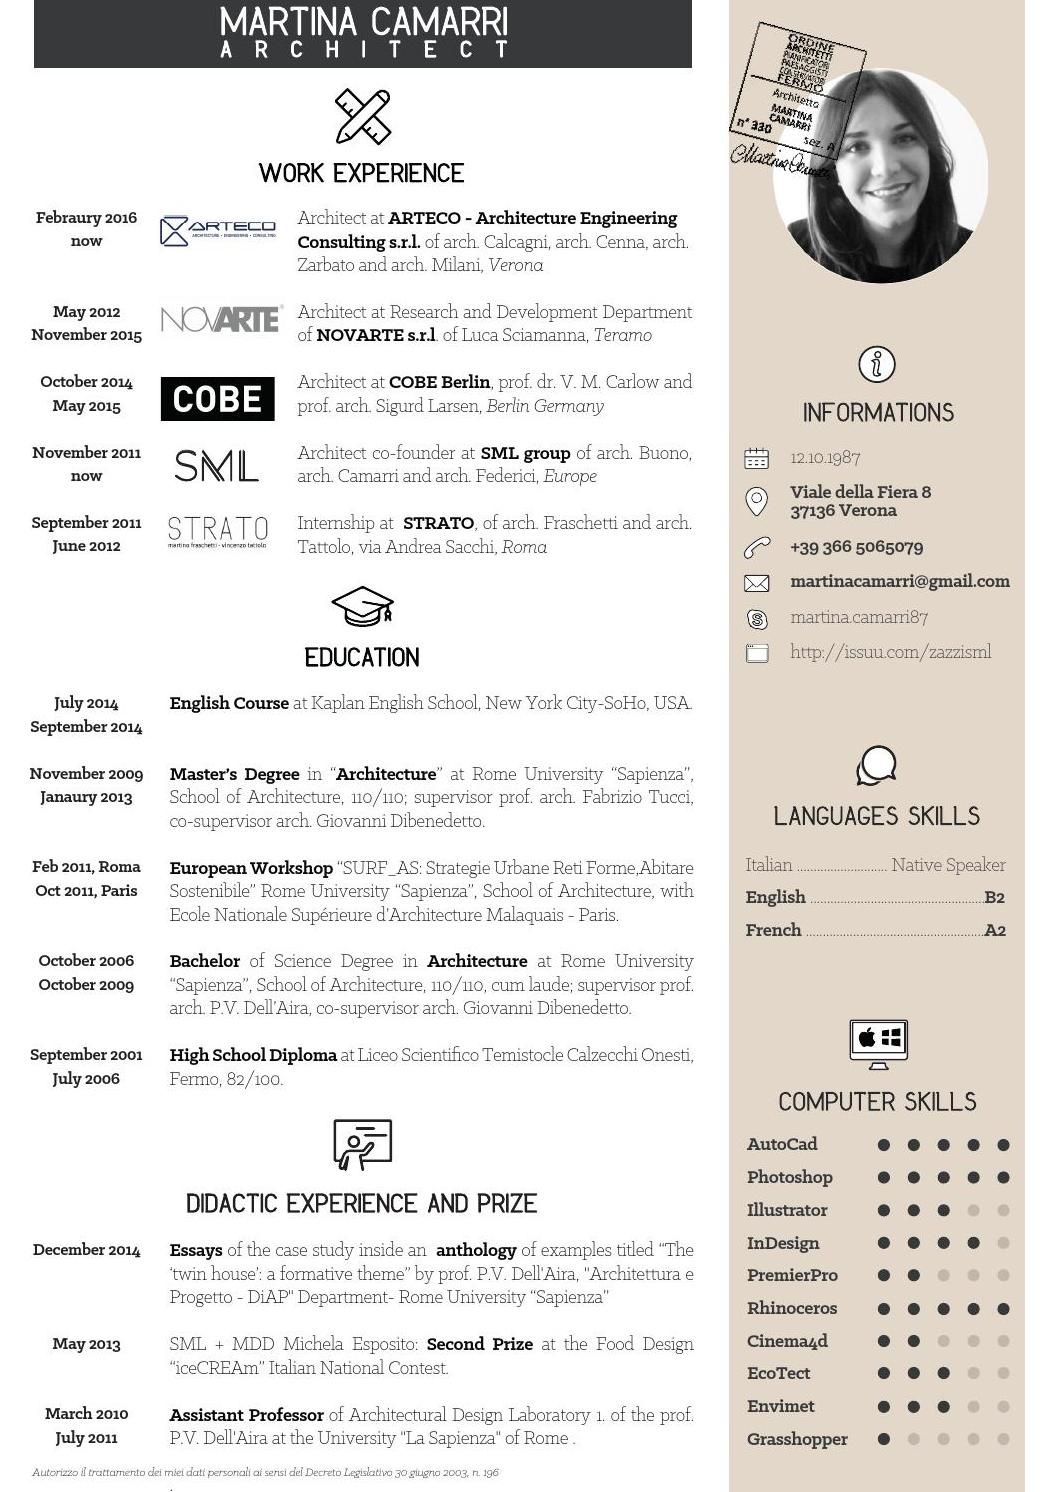 CV Martina Camarri Architetto Cv design, Architect